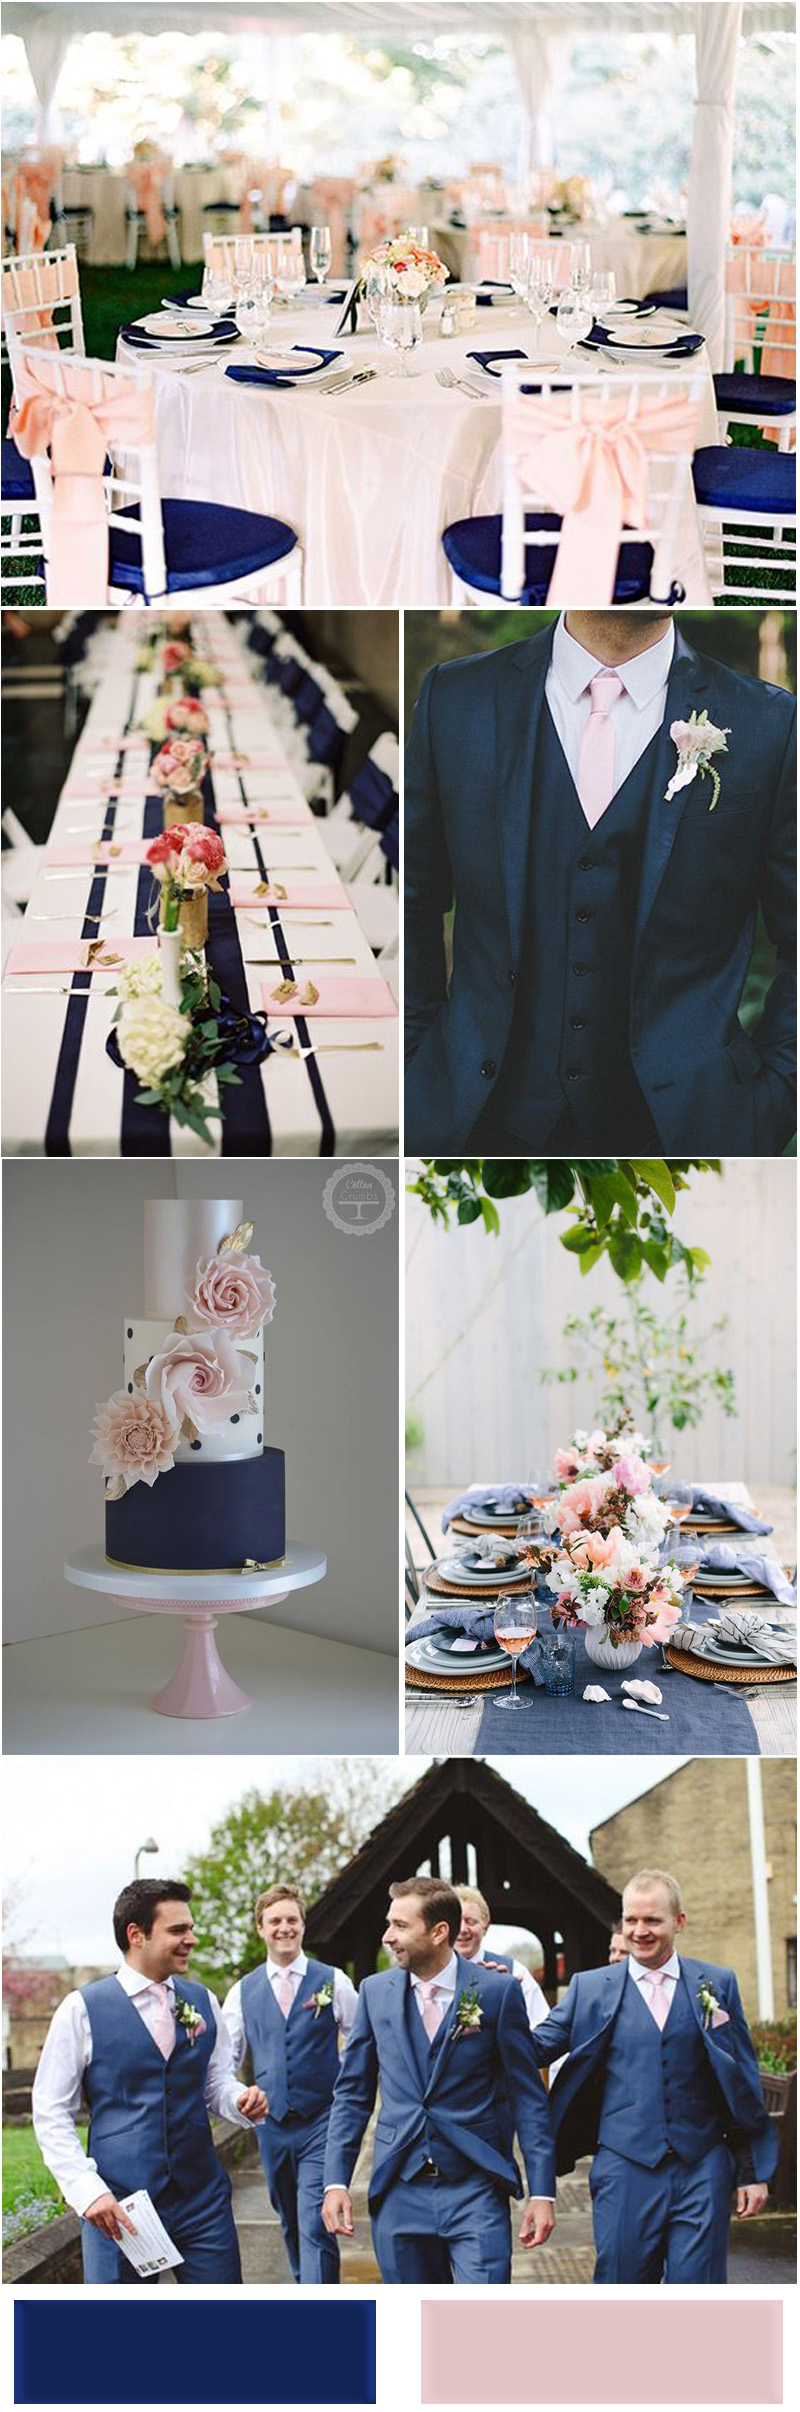 Emejing Pink And Navy Blue Wedding Ideas - Styles & Ideas 2018 ...